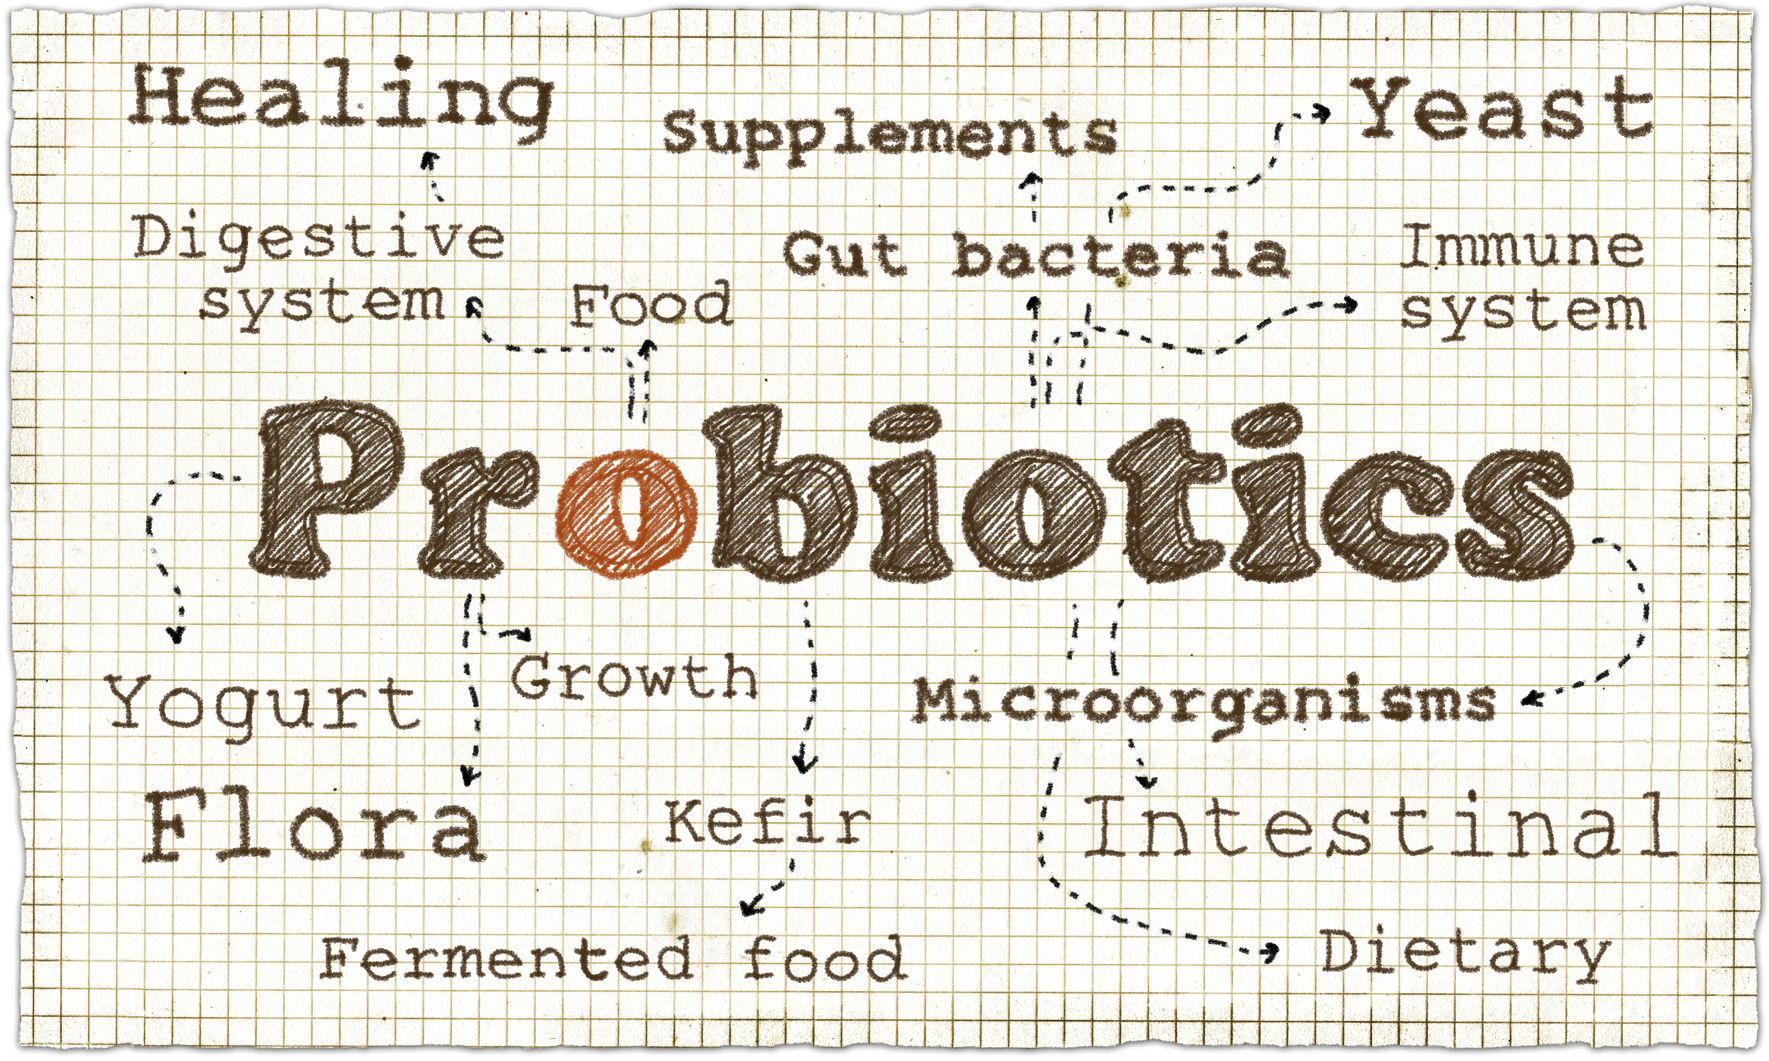 3 Reasons to Add Probiotics to Your Daily Routine